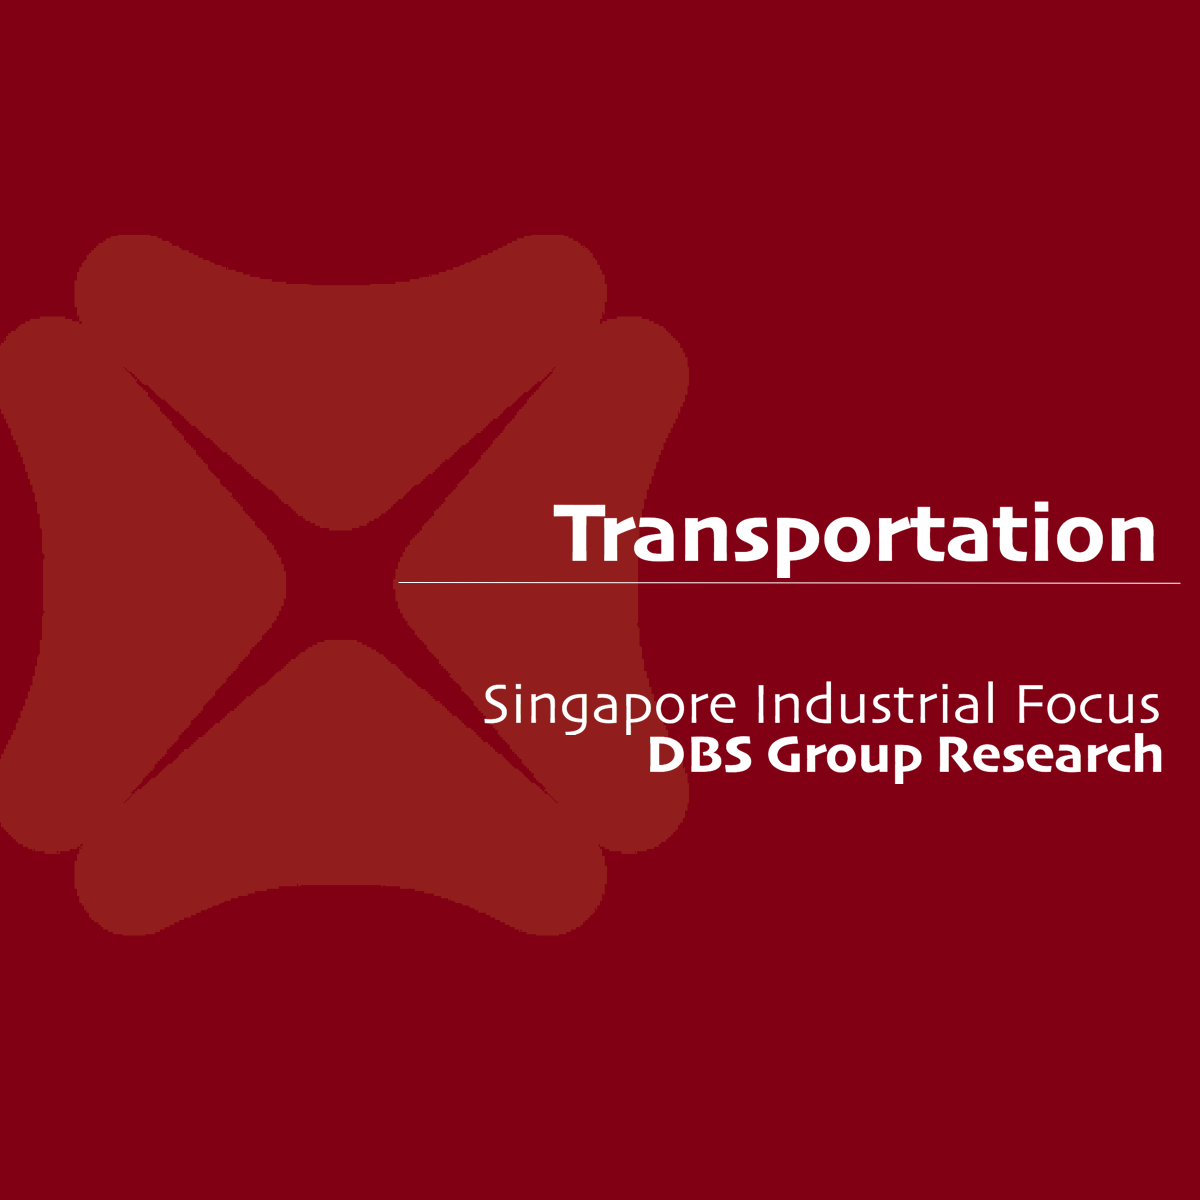 Transport Related - DBS Vickers 2016-12-14: 2017 Sector Outlook ~ Focus on Defense